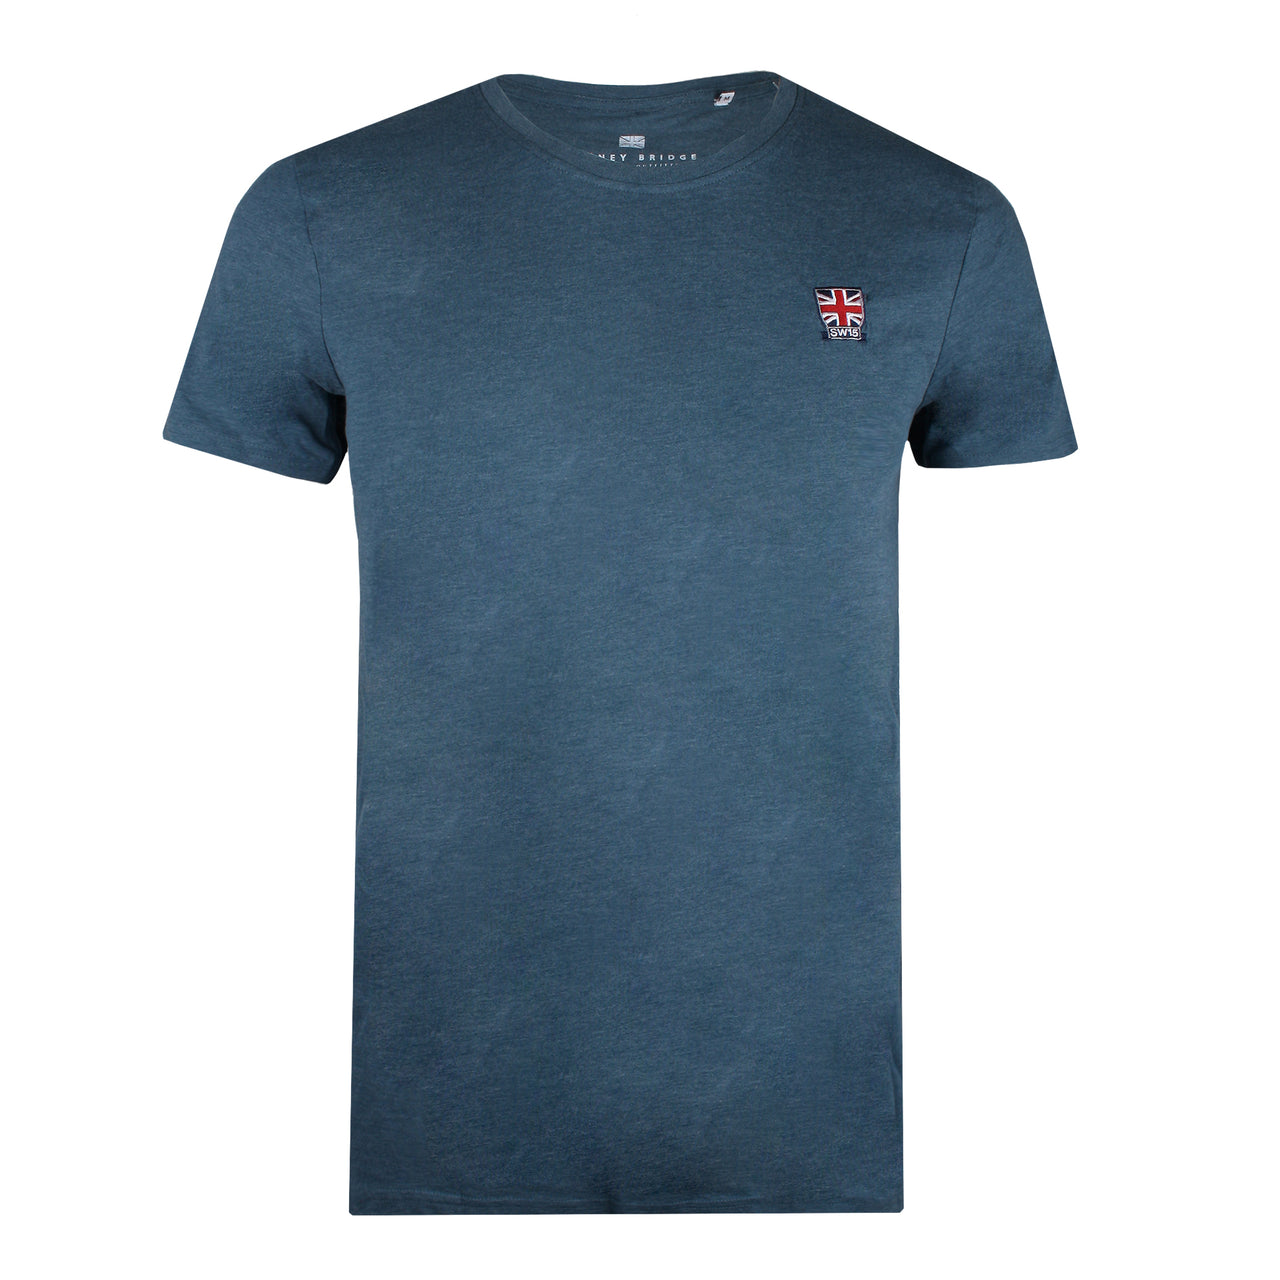 Union Badge T-shirt - Blue Steel Marl